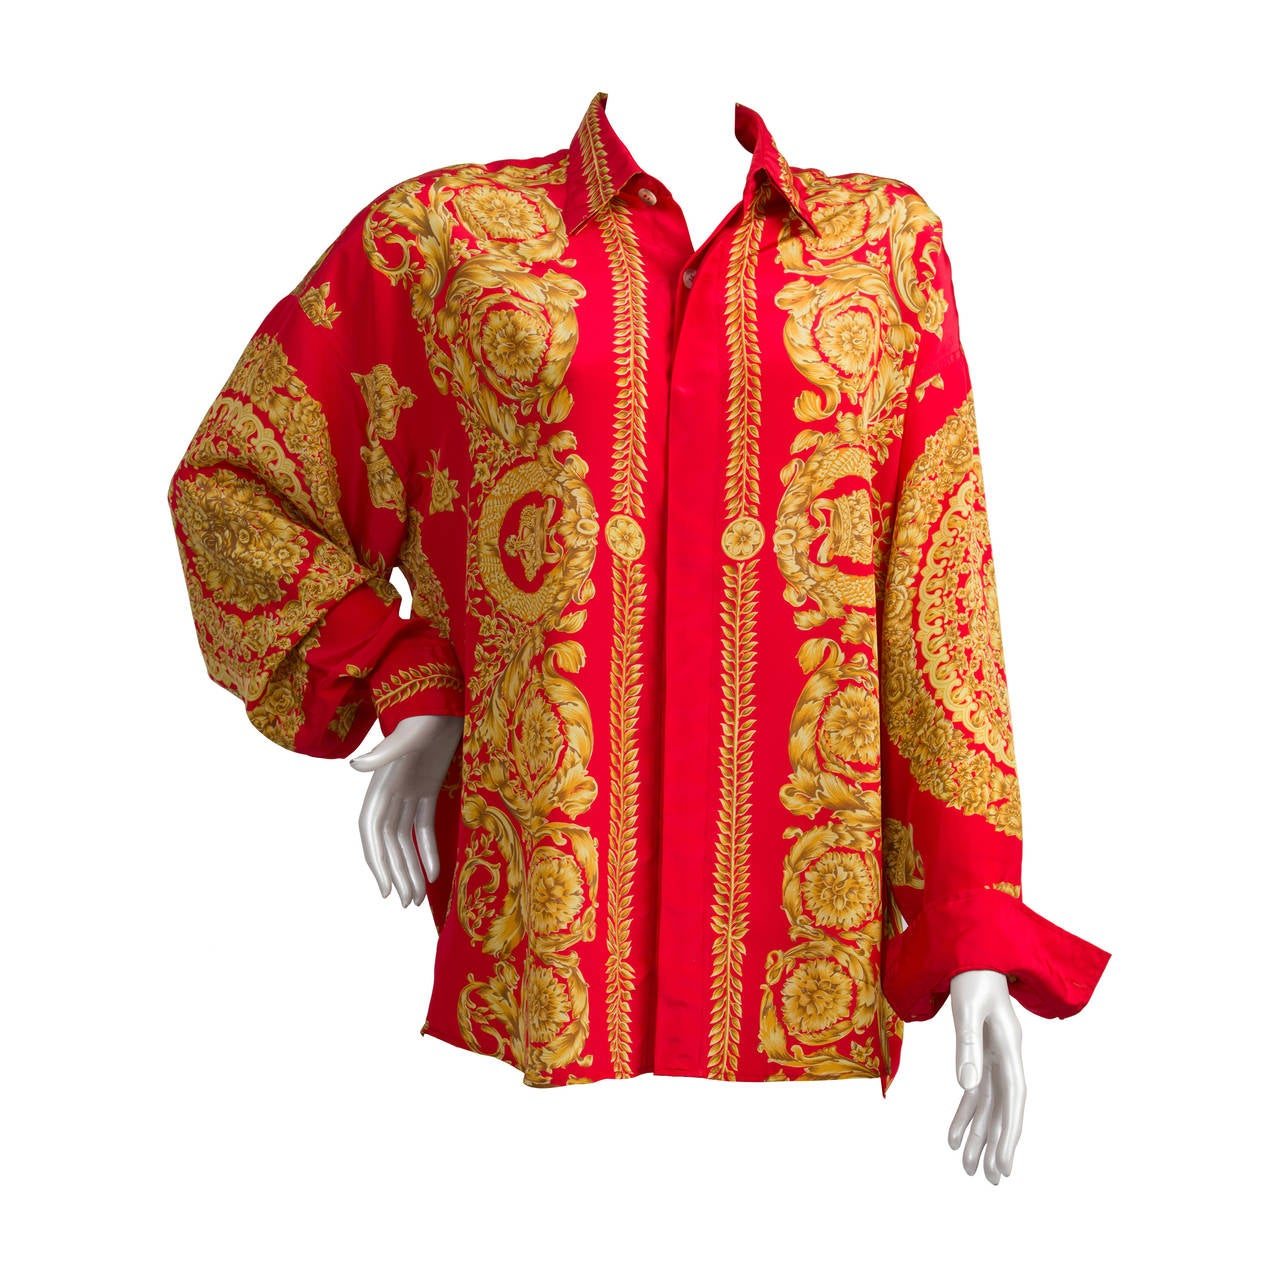 1990s Gianni Versace Iconic Red And Gold Shirt At 1stdibs